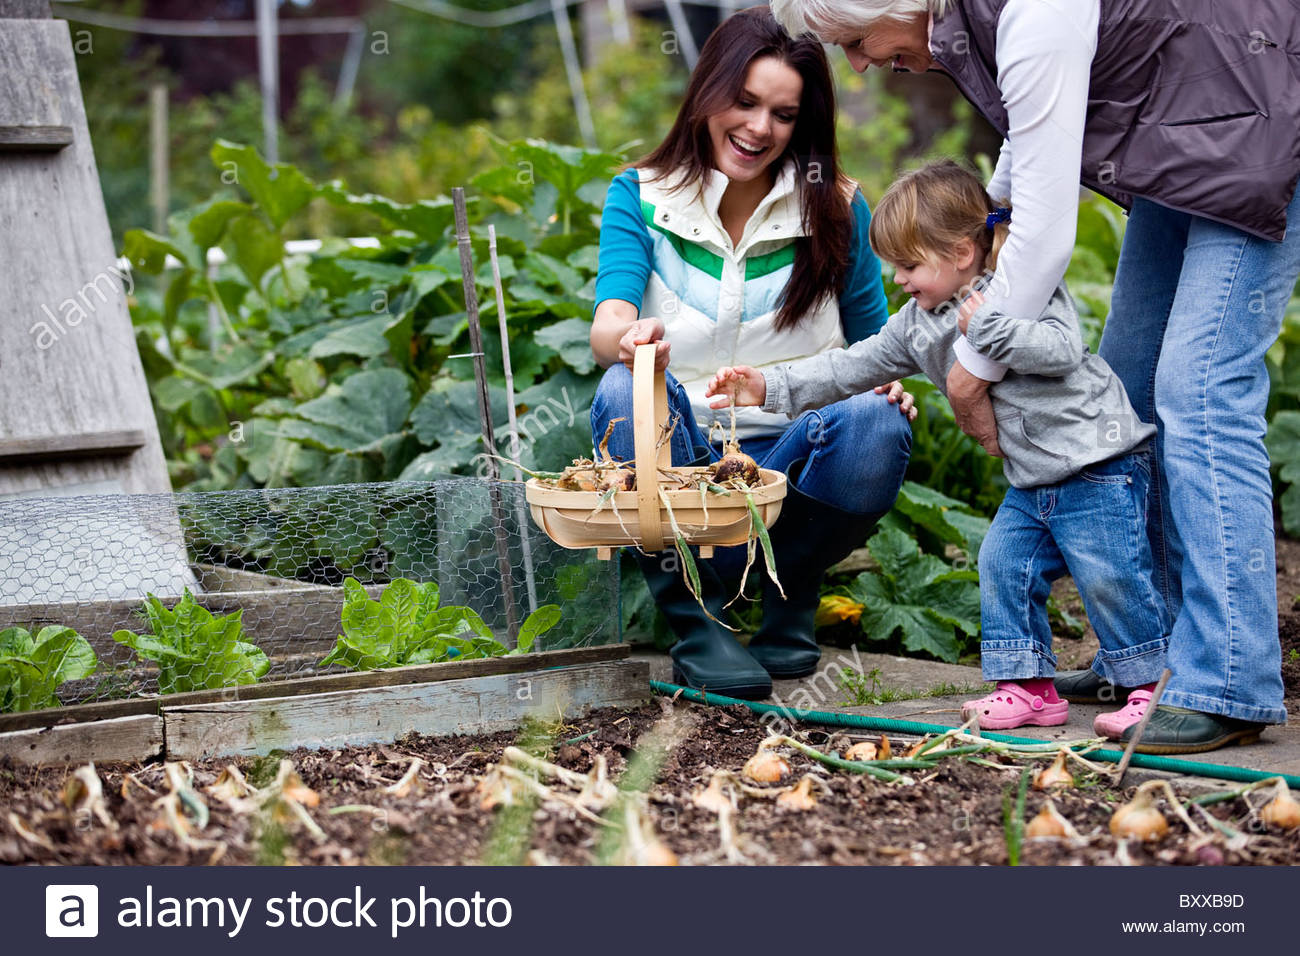 A family pulling up onions on an allotment - Stock Image